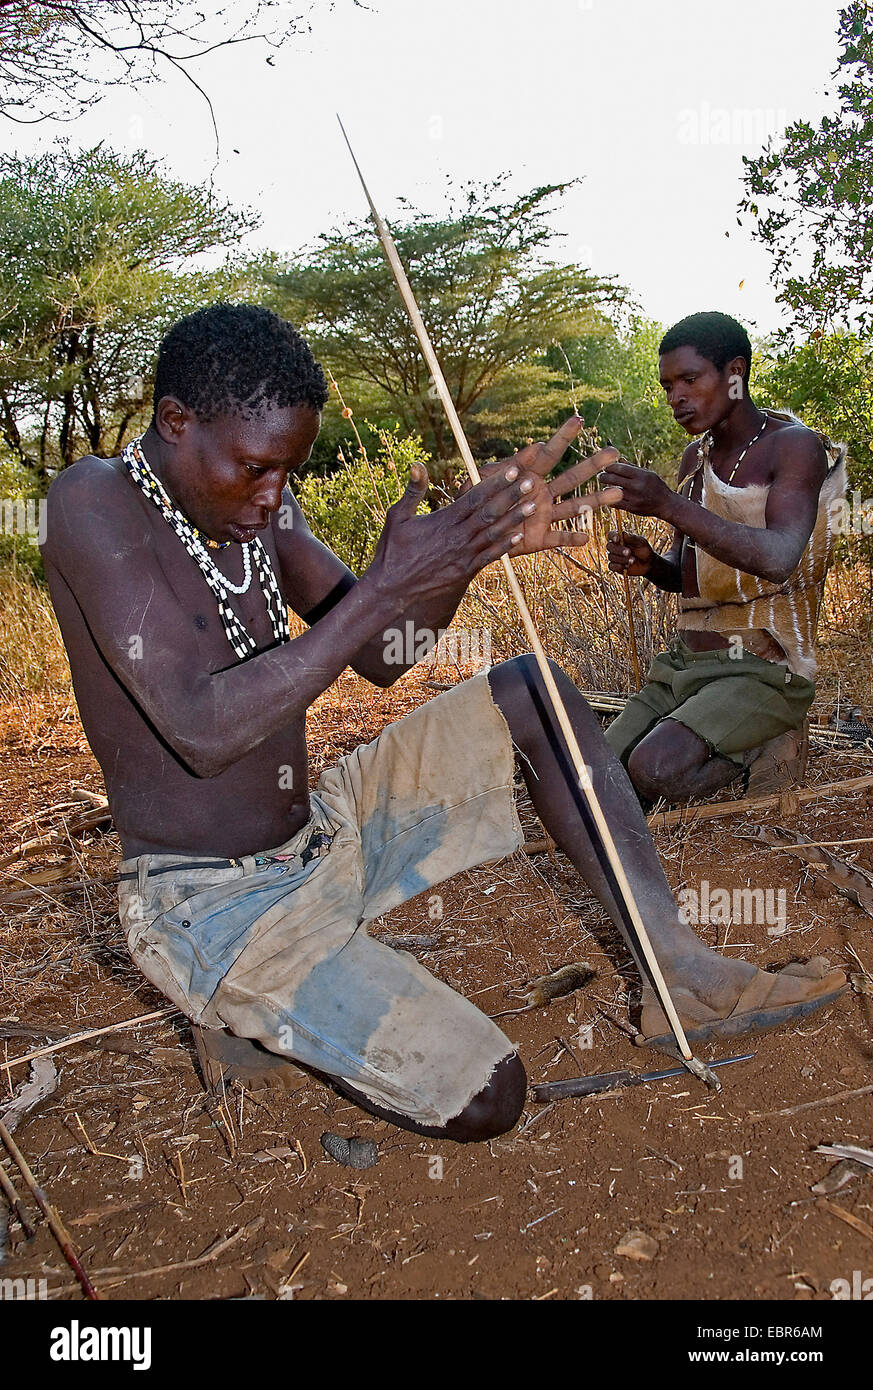 Hadzabe bushmen making up fire with a stick, Tanzania - Stock Image